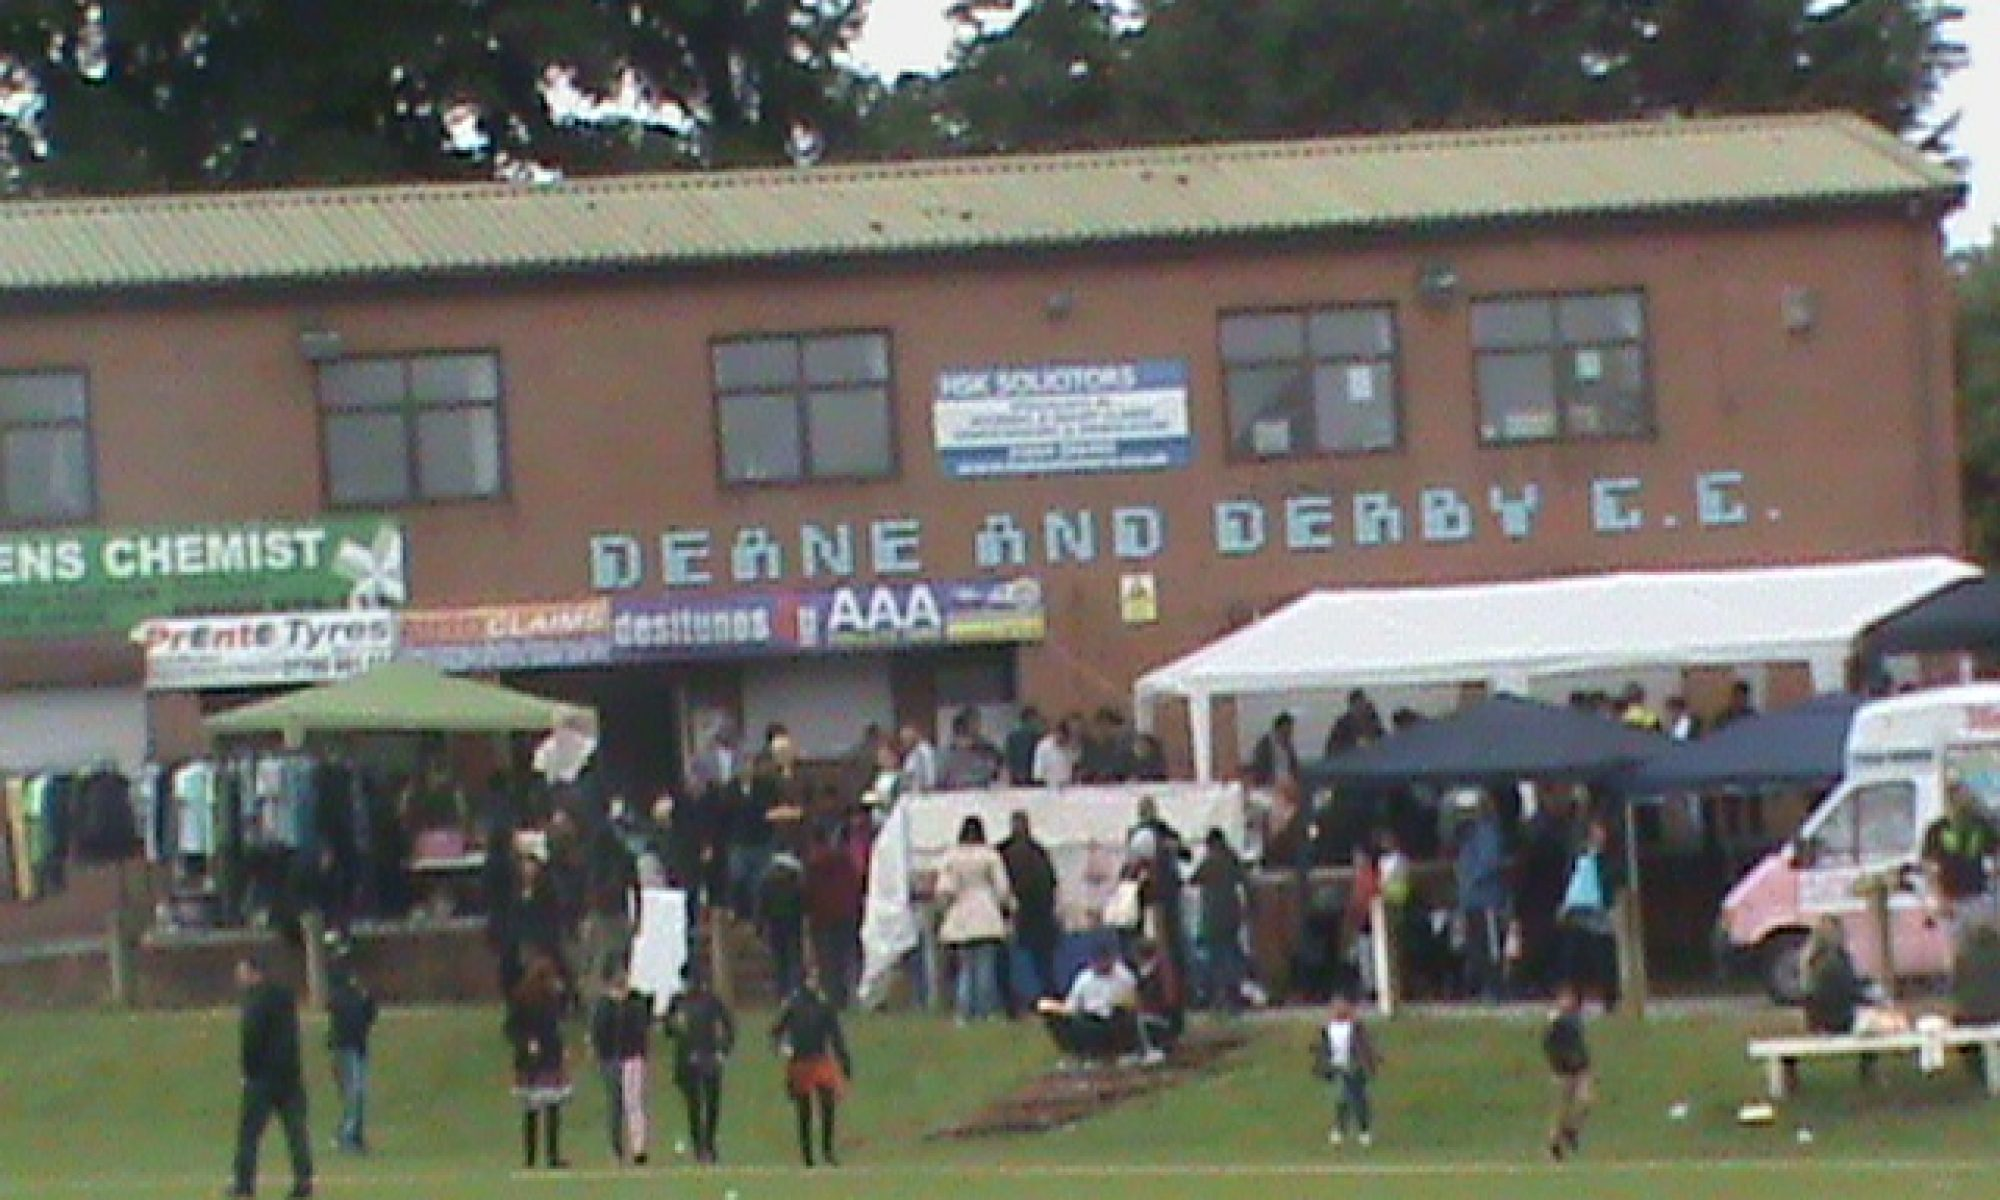 BOLTON DEANE AND DERBY CRICKET AND SOCIAL CLUB